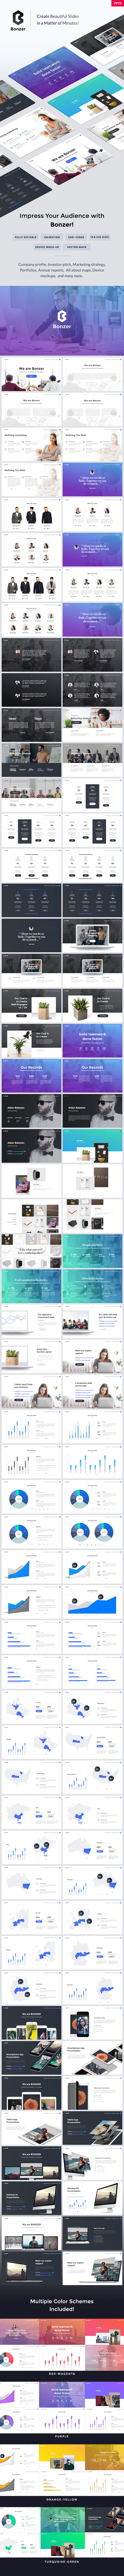 Creative Pitch (Bonzer) - Powerpoint Template - PowerPoint Templates Presentation Templates